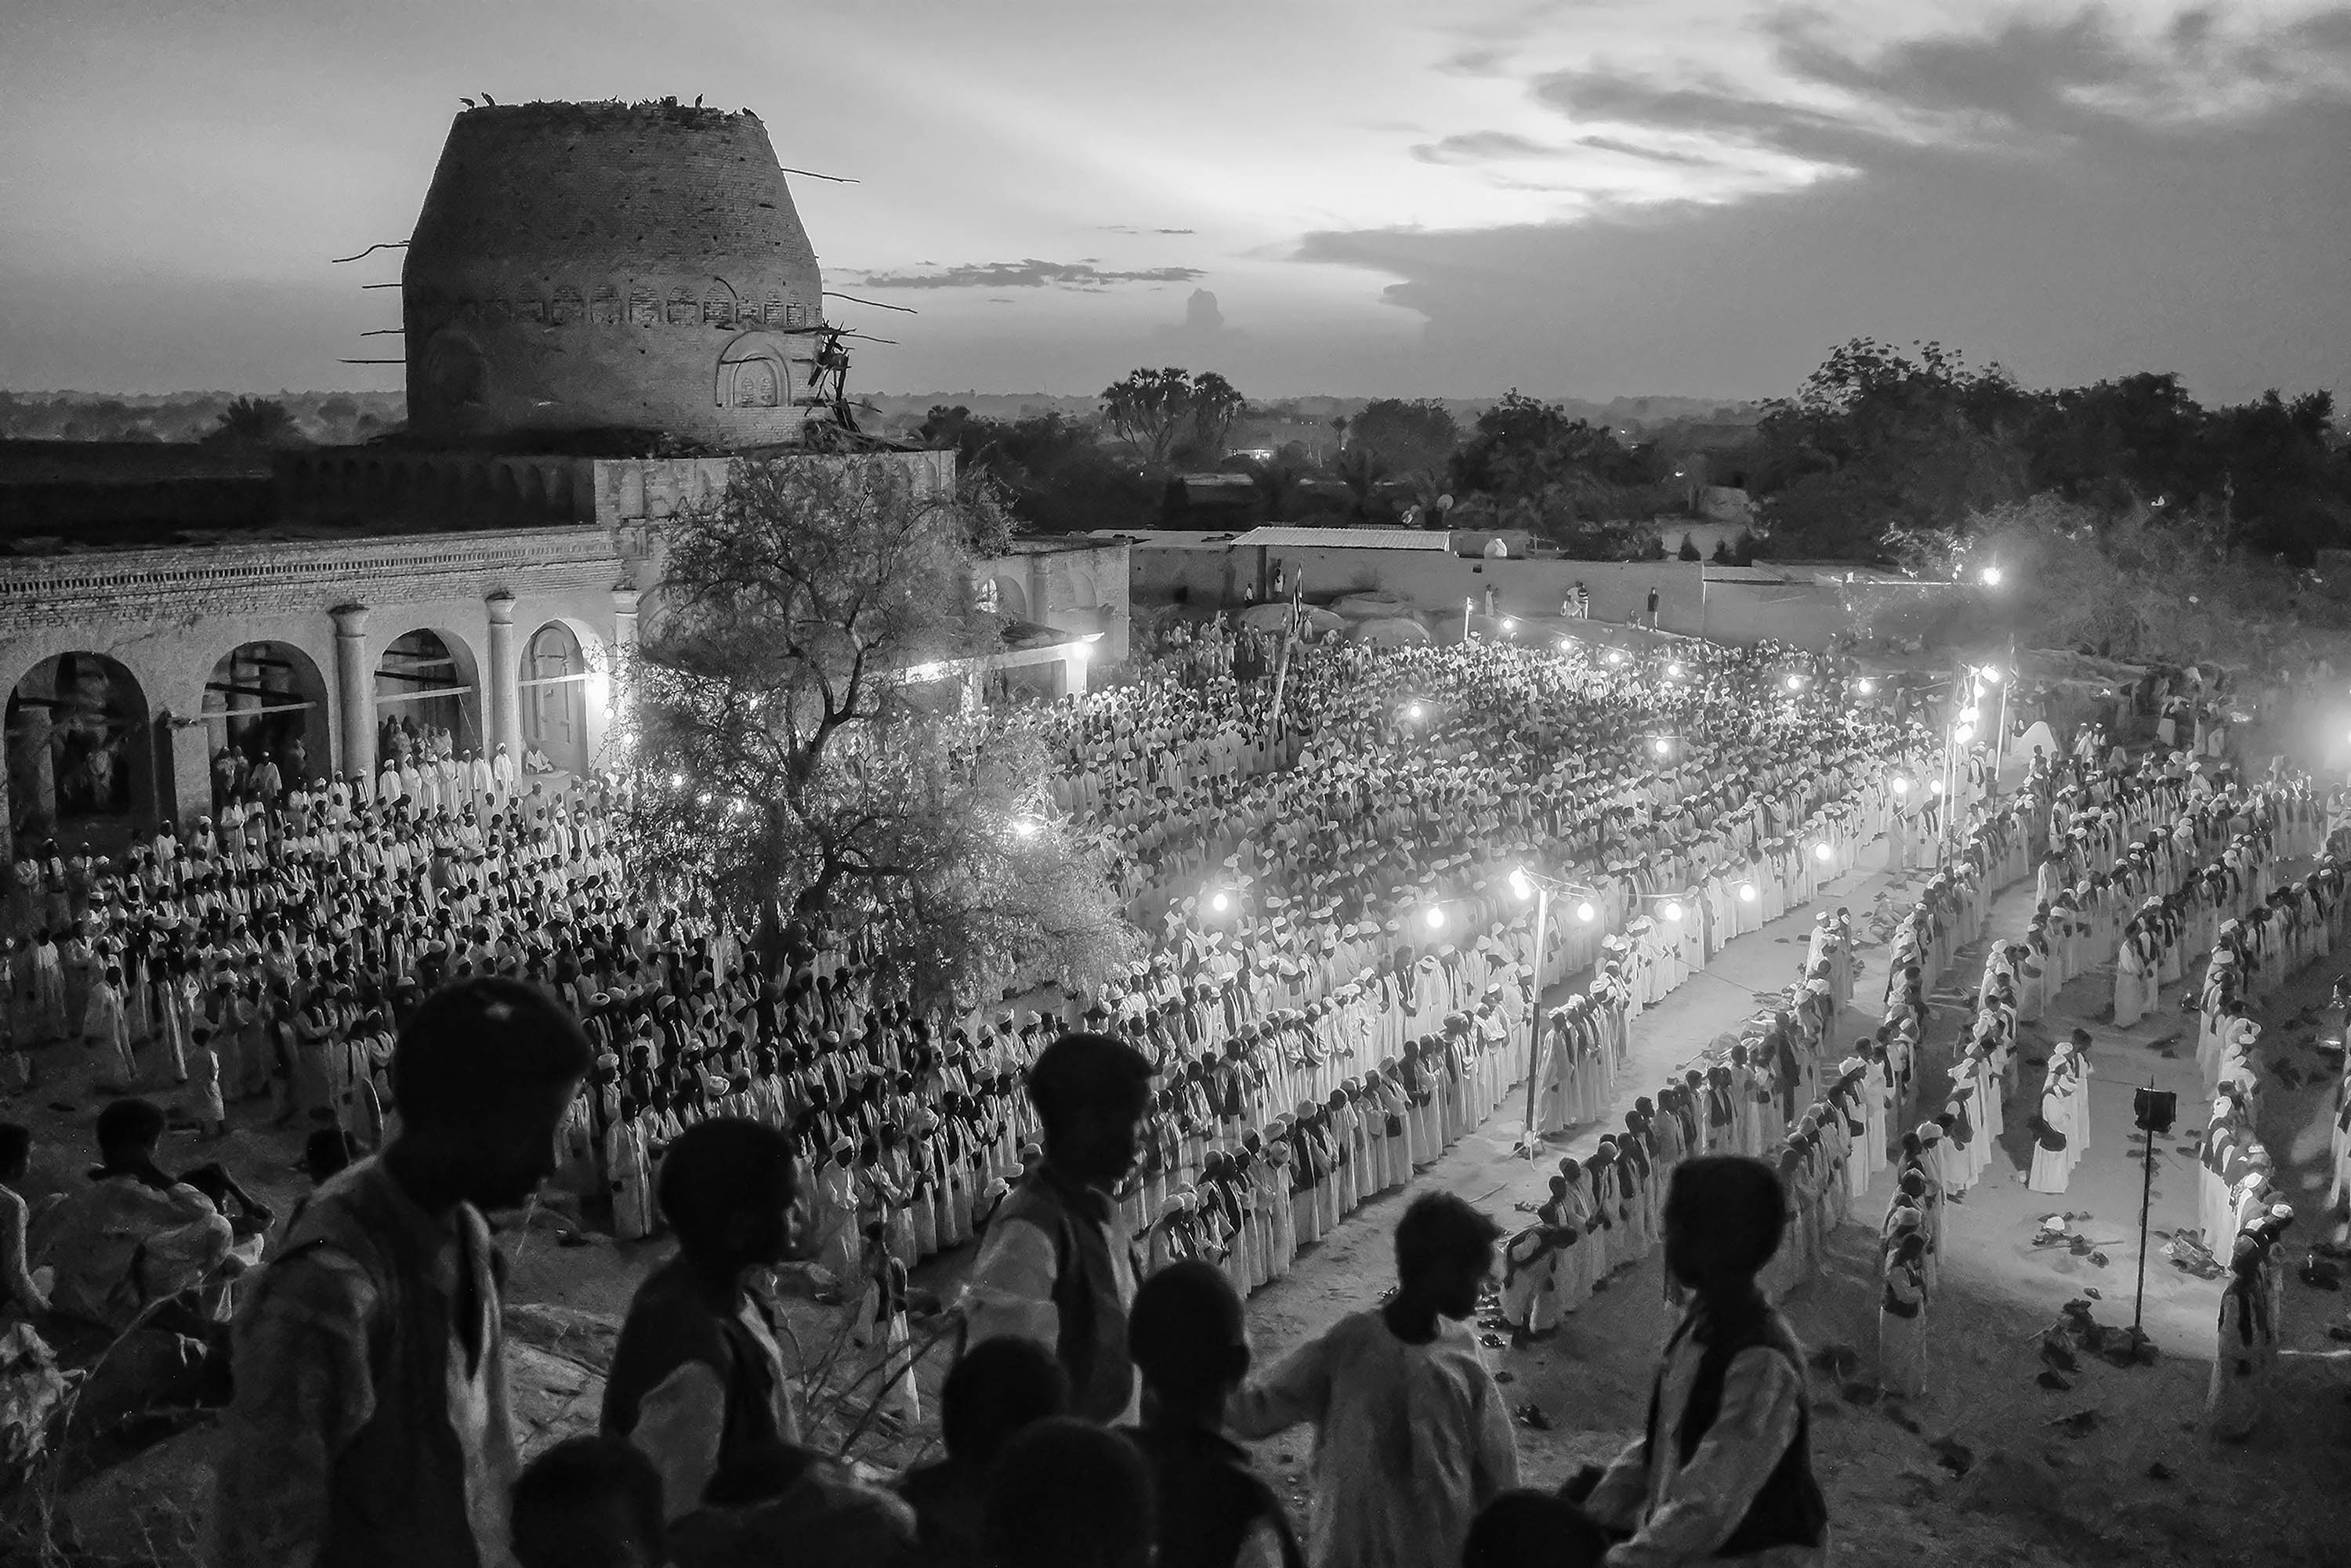 29. Hundreds of Sufi devotees participate in the evening prayer. Kasalla. Sudan. 2017